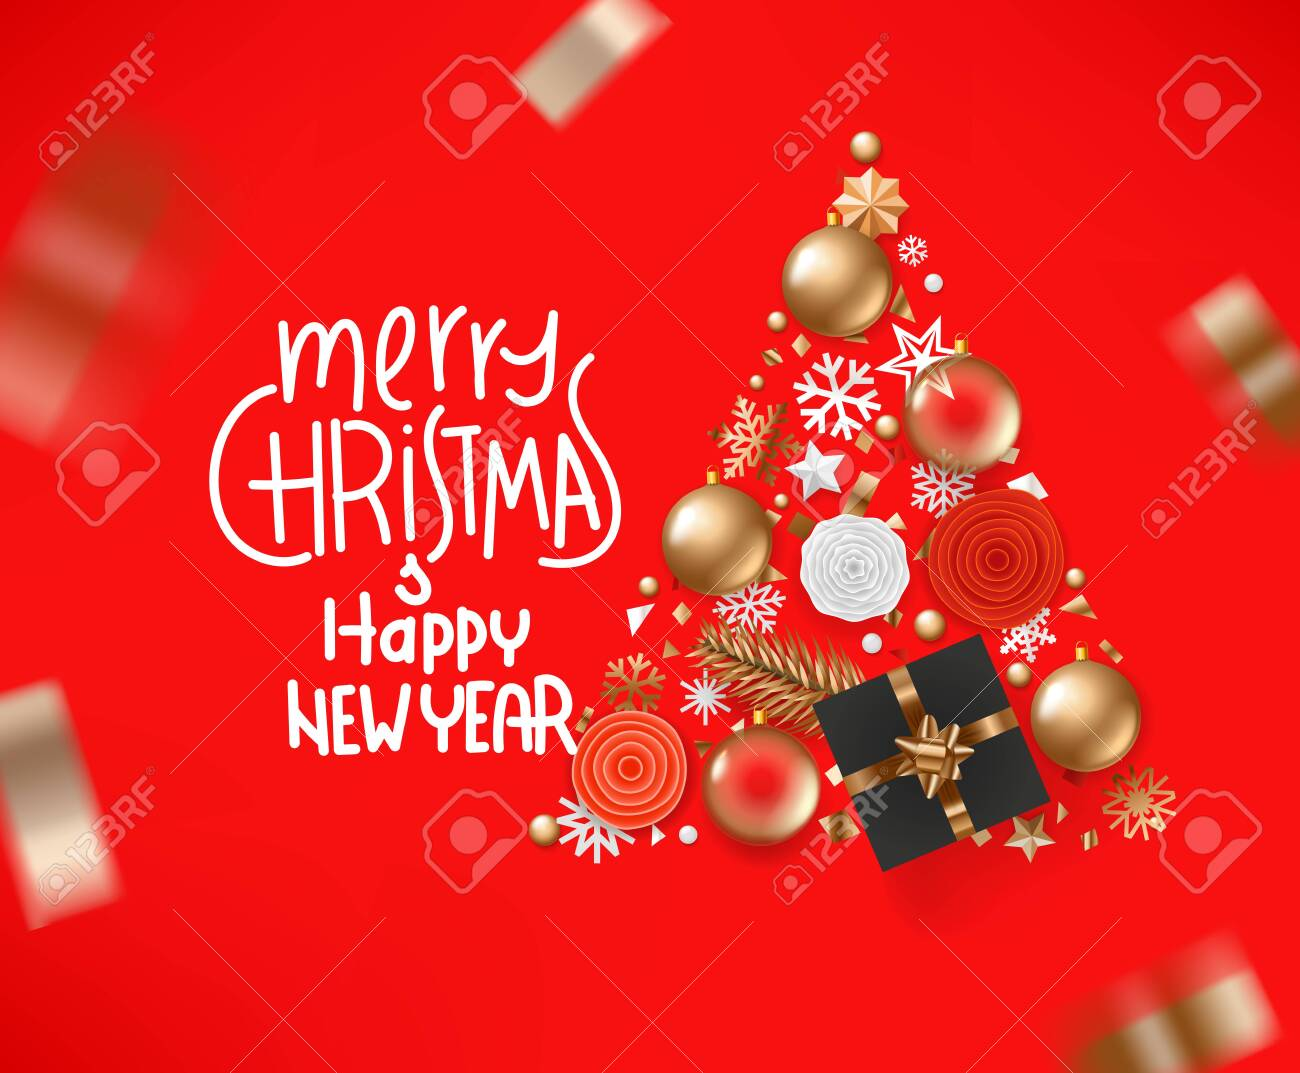 merry christmas and happy new 2020 year greeting card vector royalty free cliparts vectors and stock illustration image 134559269 merry christmas and happy new 2020 year greeting card vector